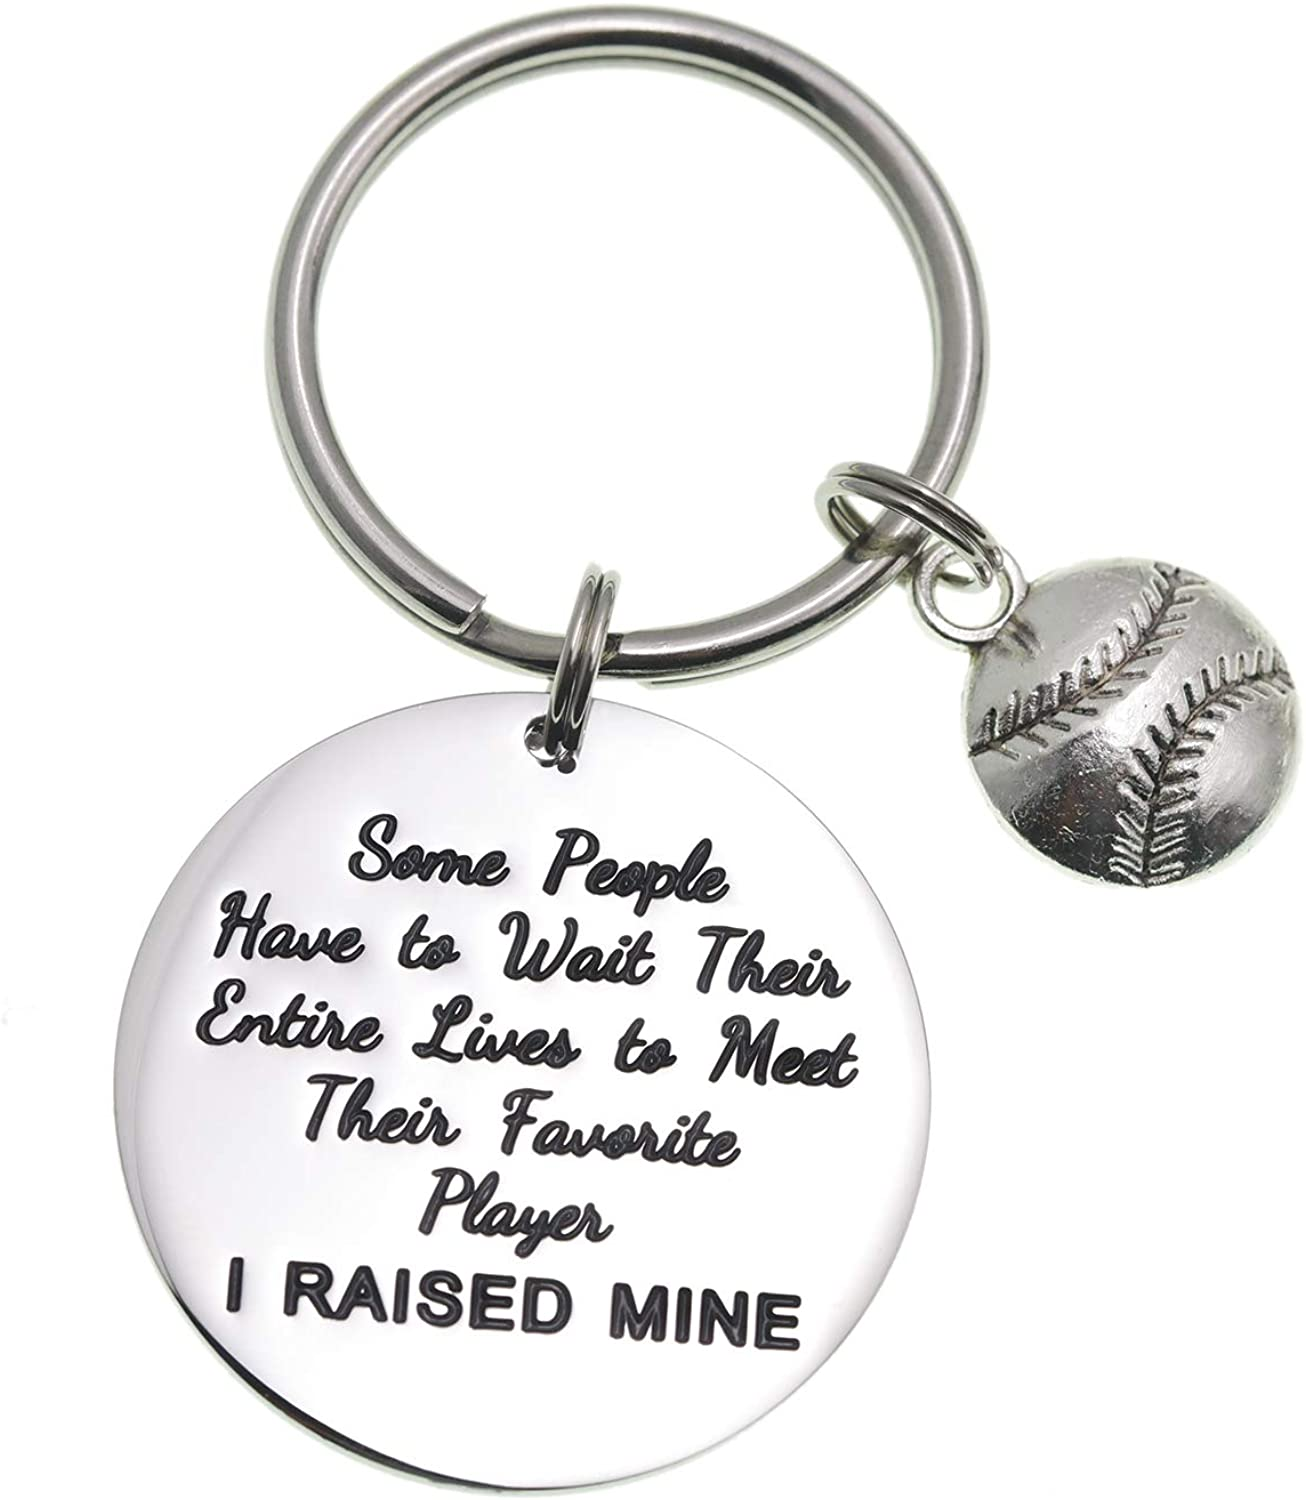 Melix Home Baseball Basketball Soccer Ball Keychains for Women Some People Have to Wait Their Entire Lives to Meet Their Favorite Player I Raised Mine Dad Gifts for Mom Gifts